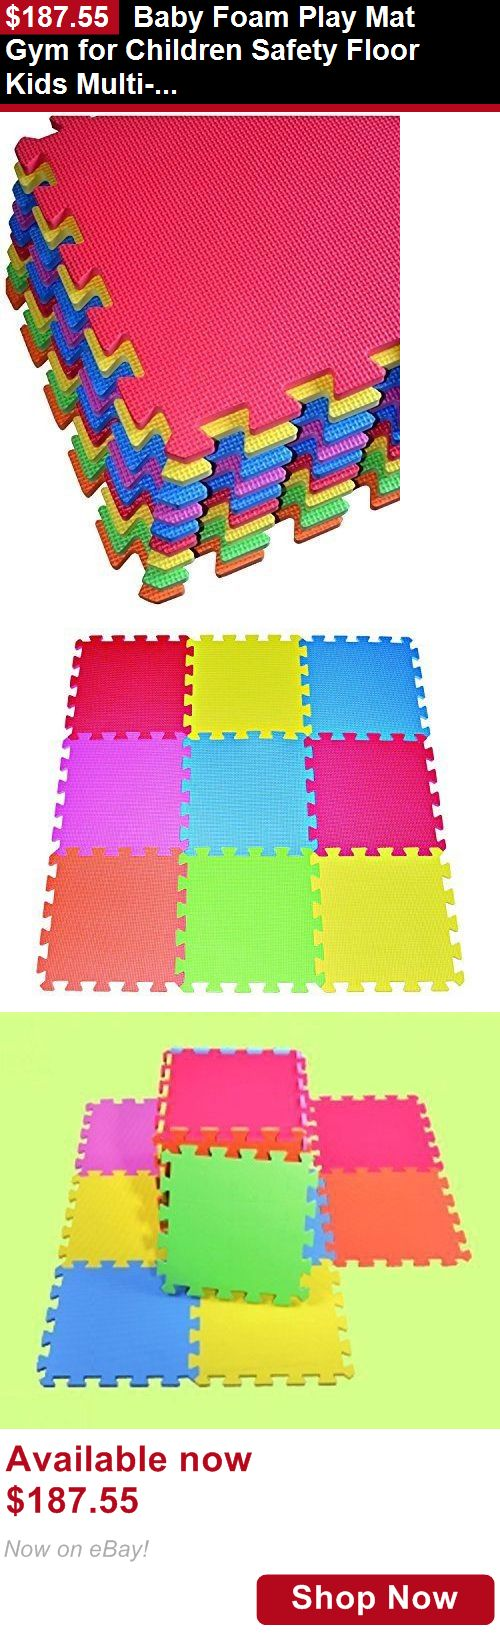 Baby gyms and play mats: Baby Foam Play Mat Gym For Children Safety Floor Kids Multi-Color Exercise Block BUY IT NOW ONLY: $187.55